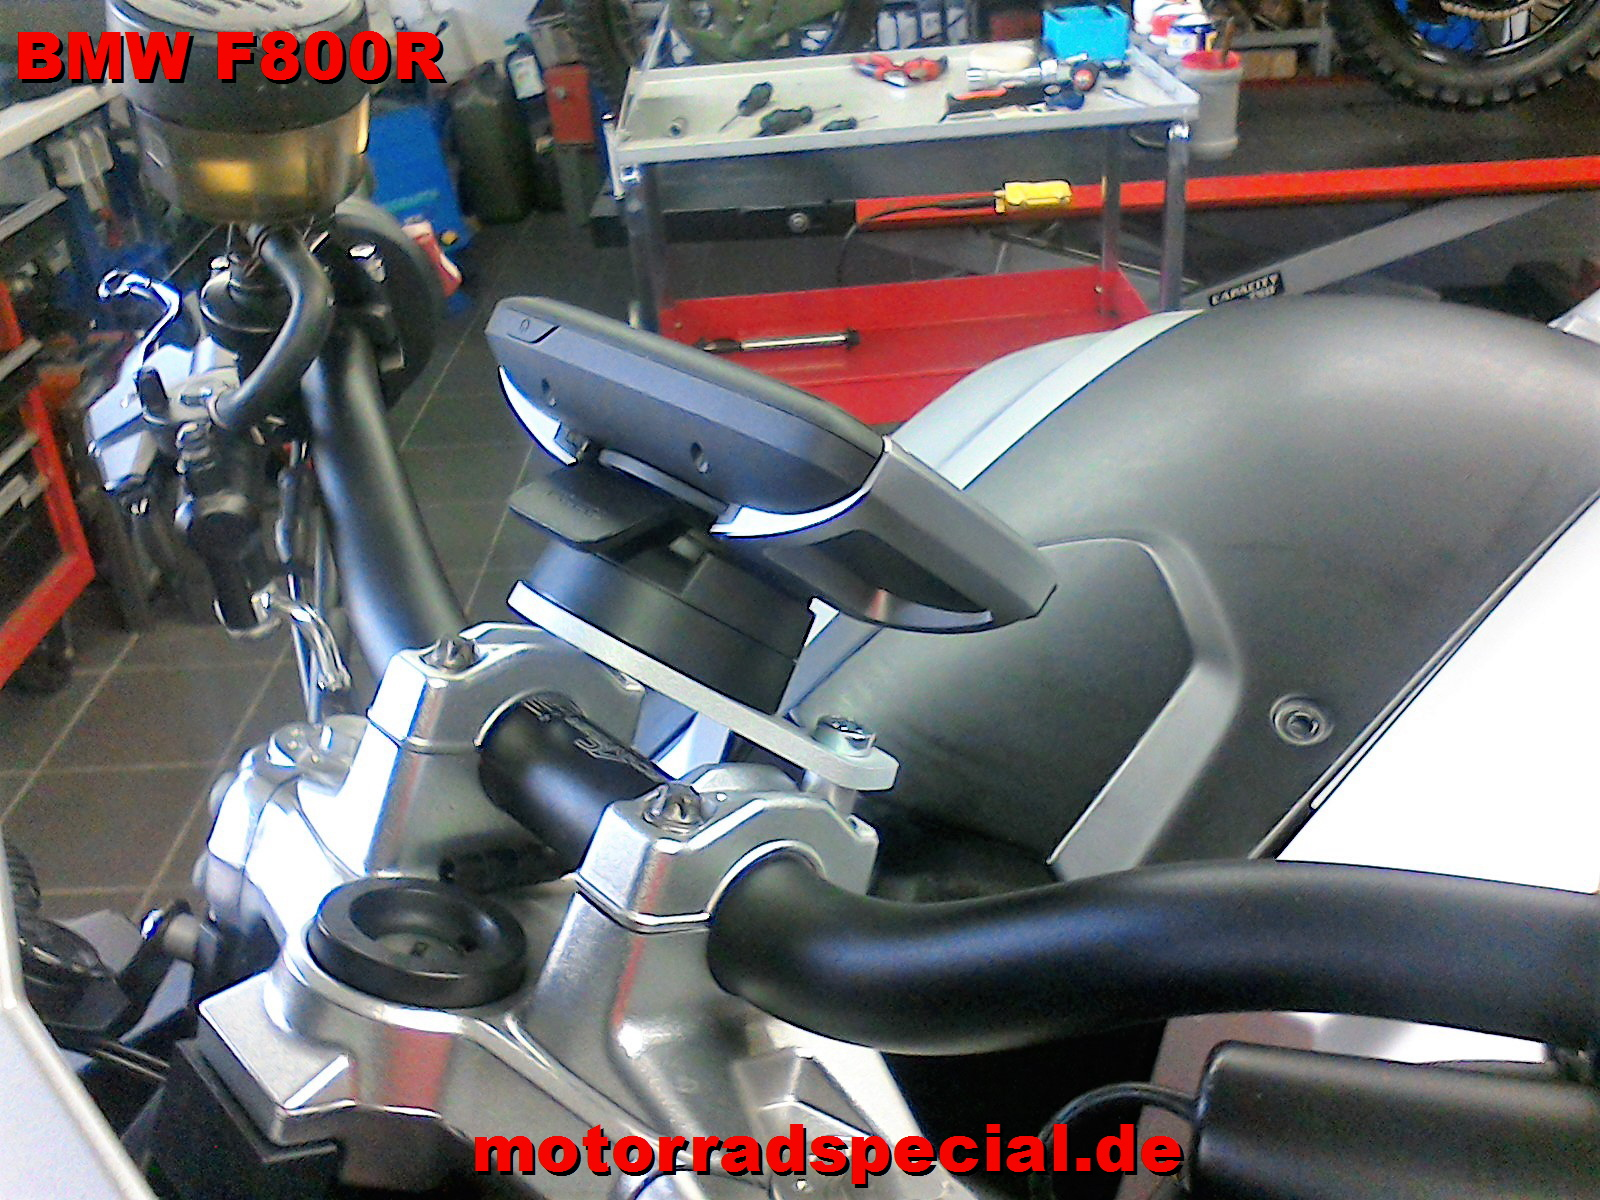 navigationshalter f r die bmw f800r tomtom rider 400 410. Black Bedroom Furniture Sets. Home Design Ideas